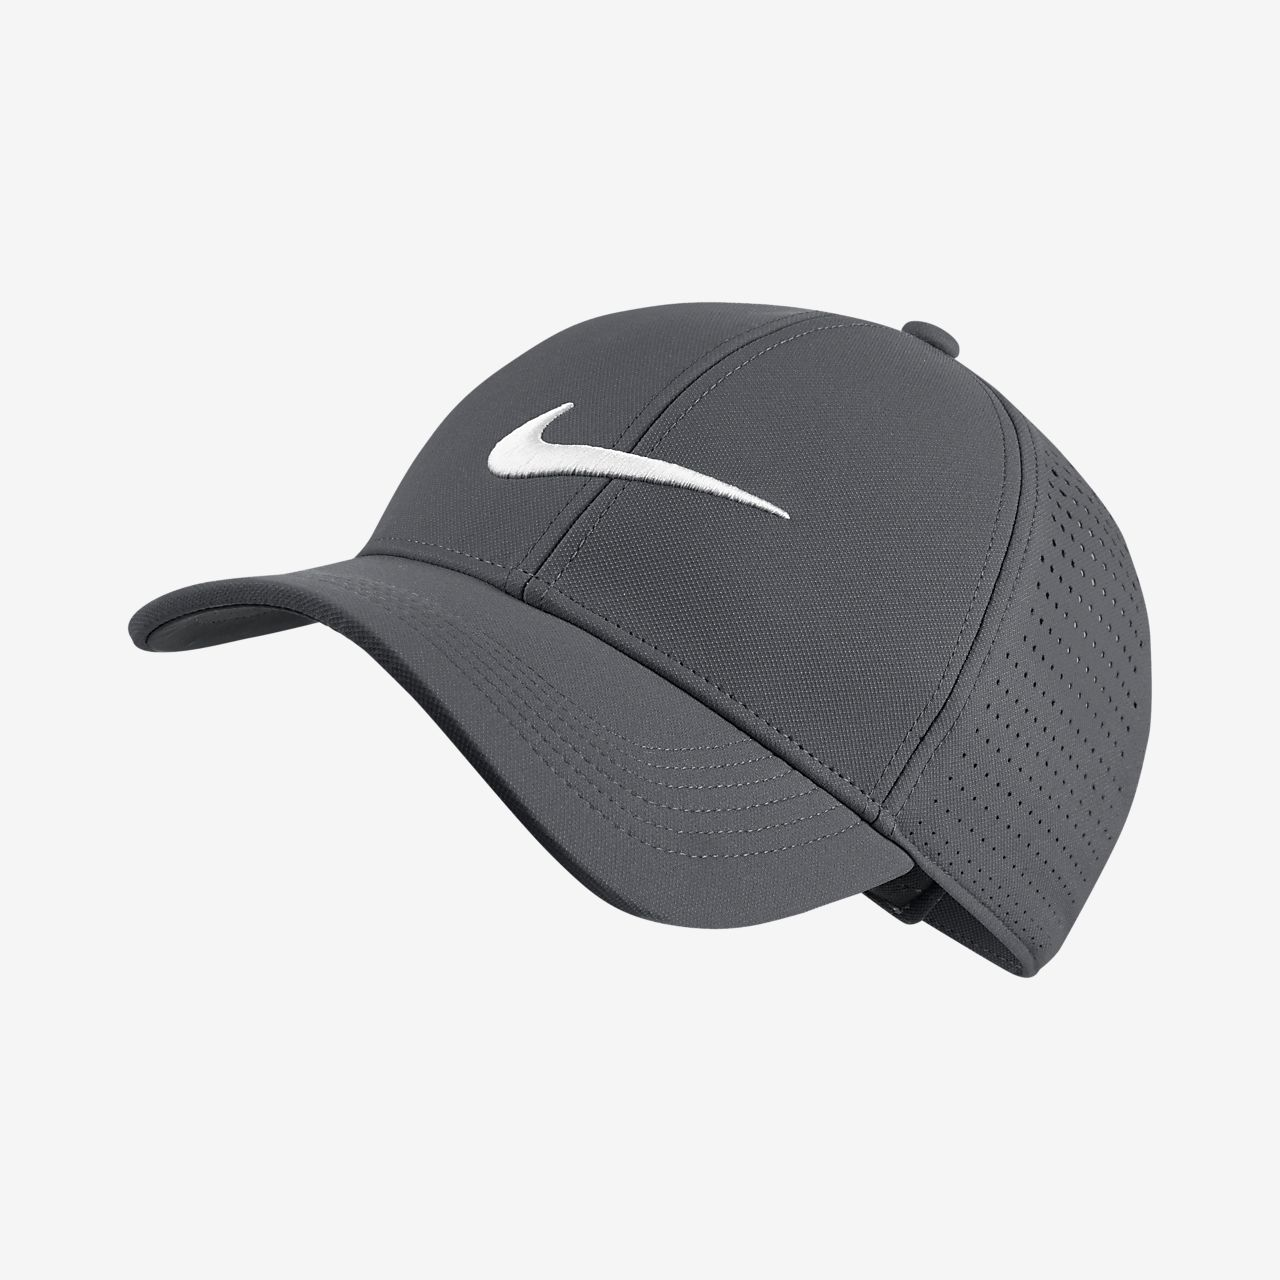 4ffc816791a Nike Legacy 91 Perforated Adjustable Golf Hat. Nike.com